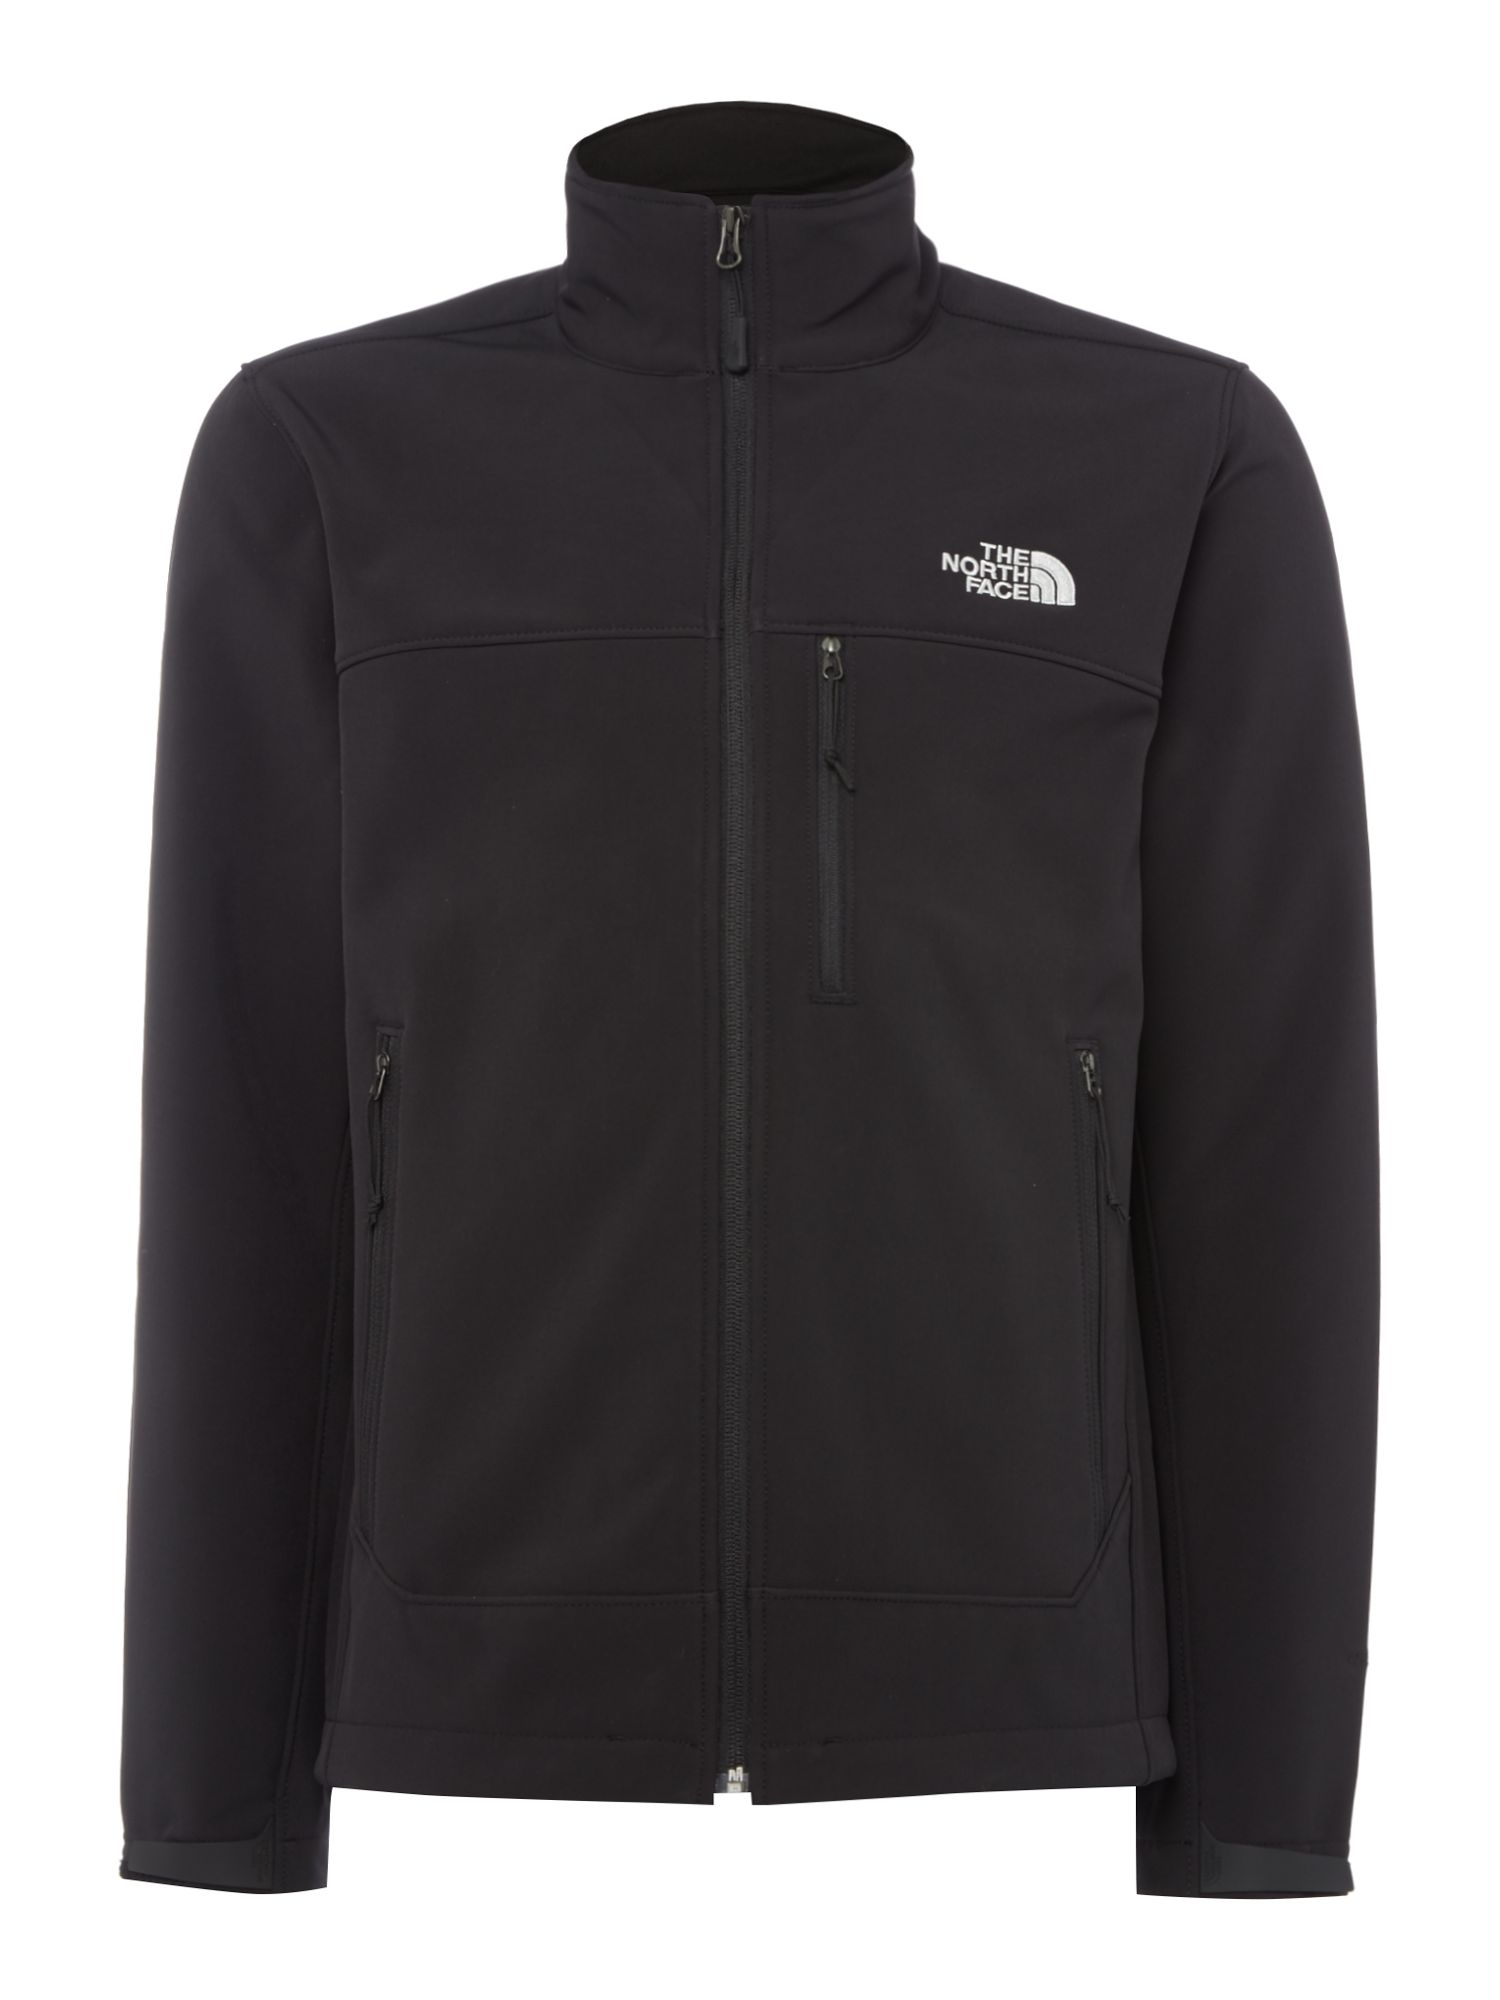 Mens The North Face Windwall Apex Bionic Jacket Black